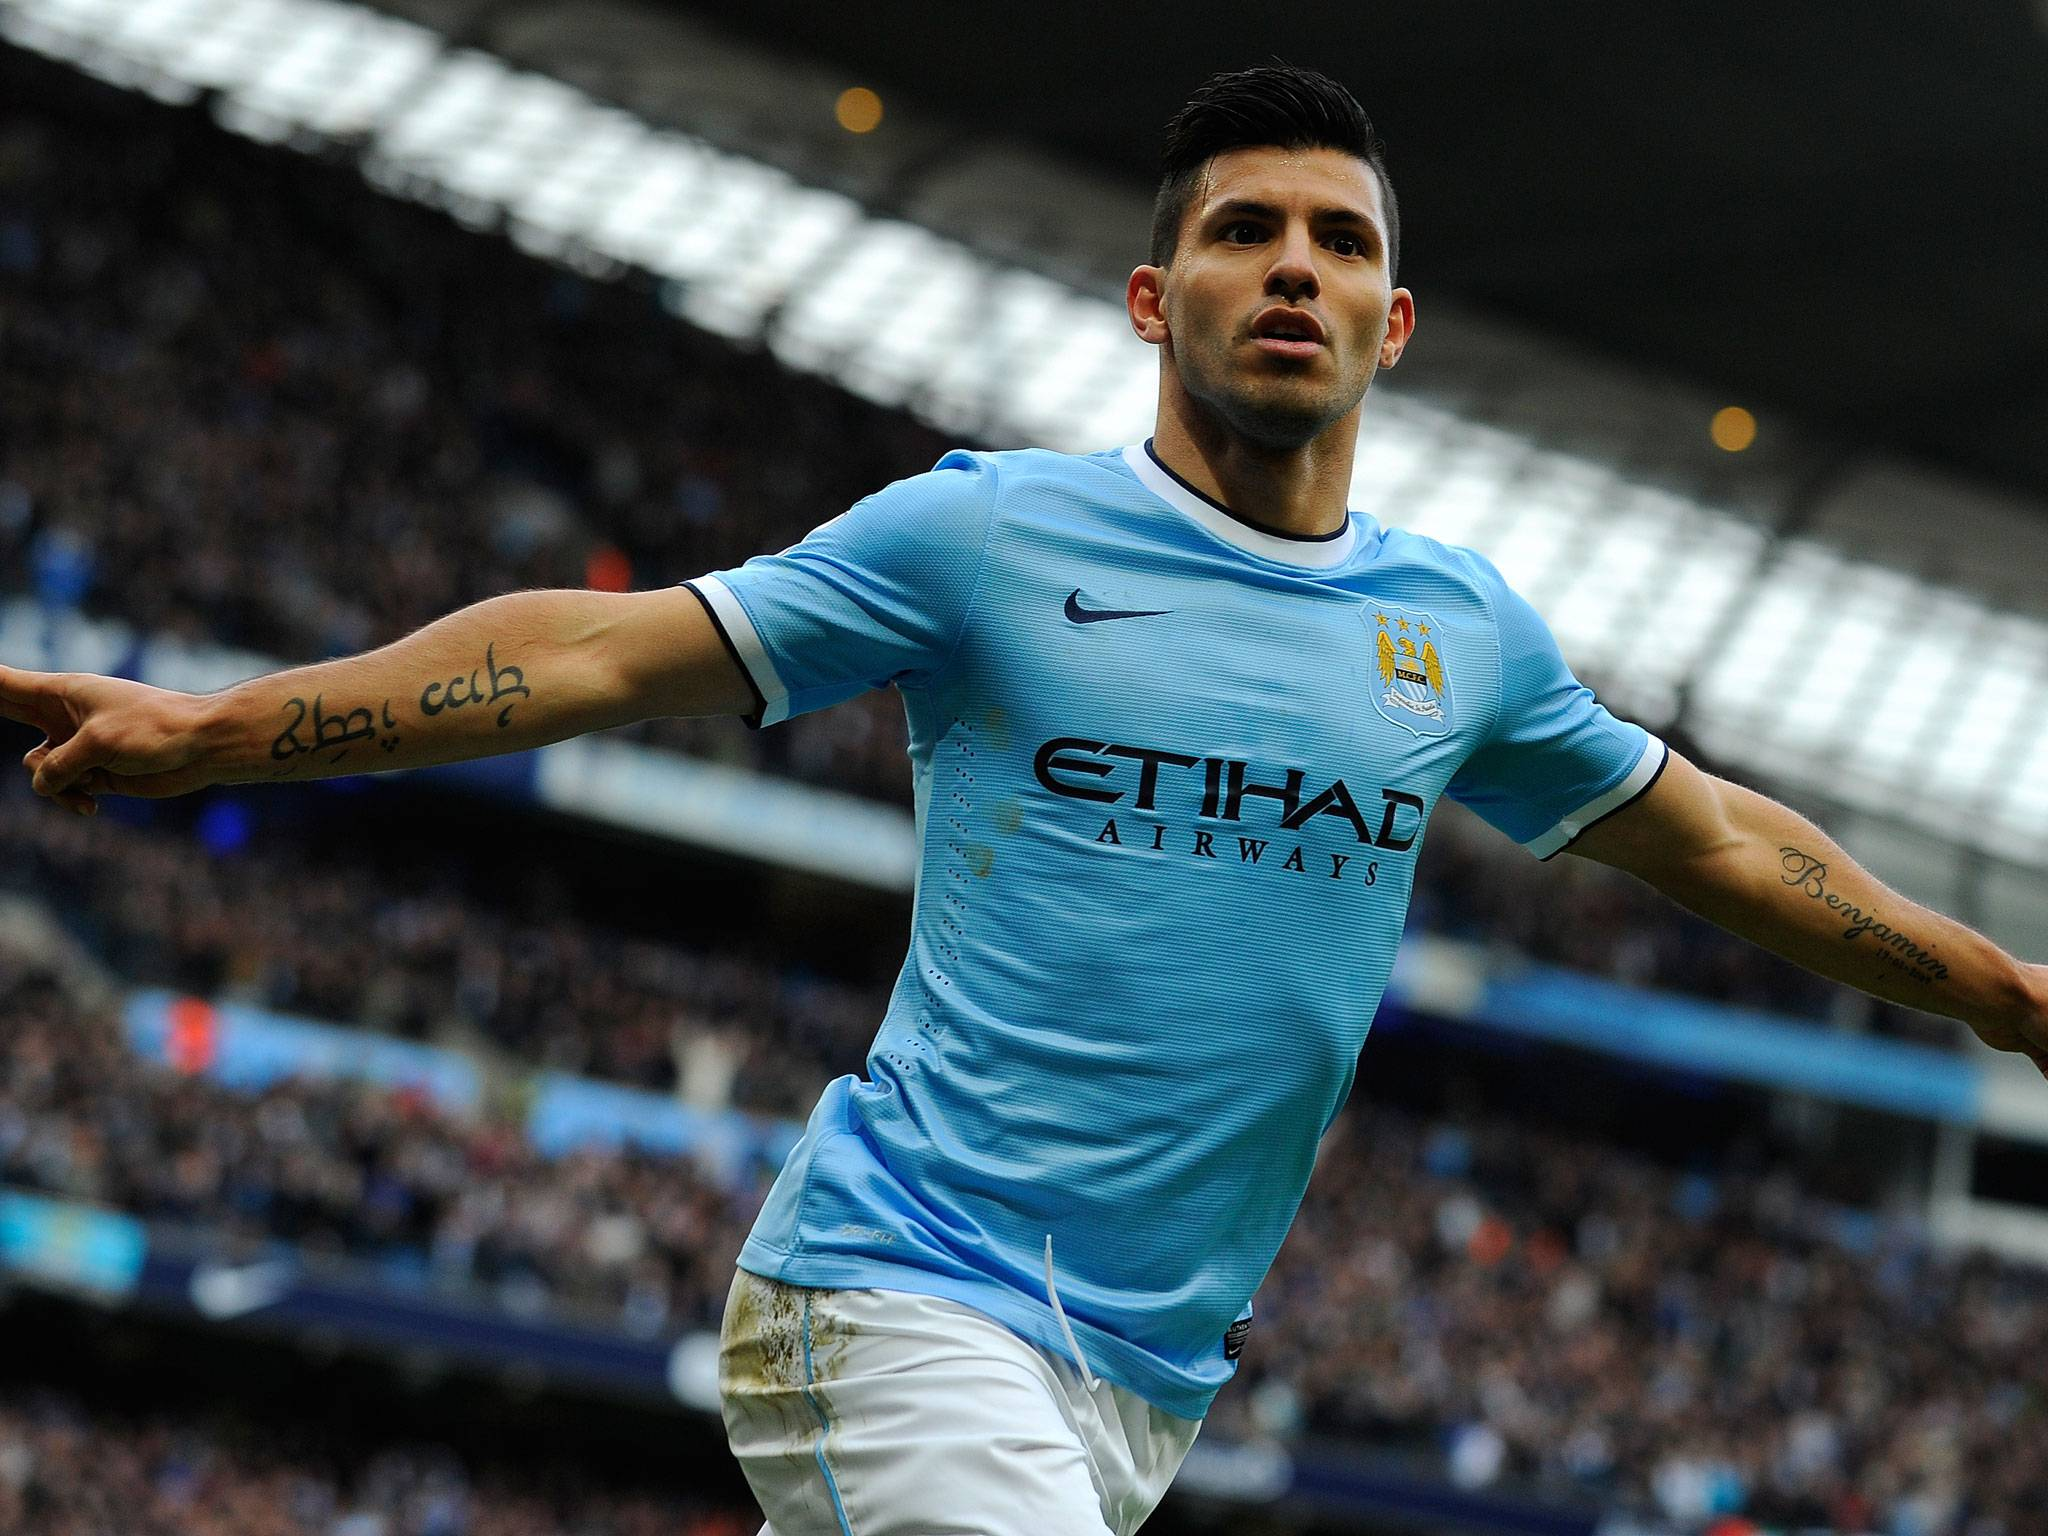 image: Sergio-Aguero-High-Quality-Wallpapers